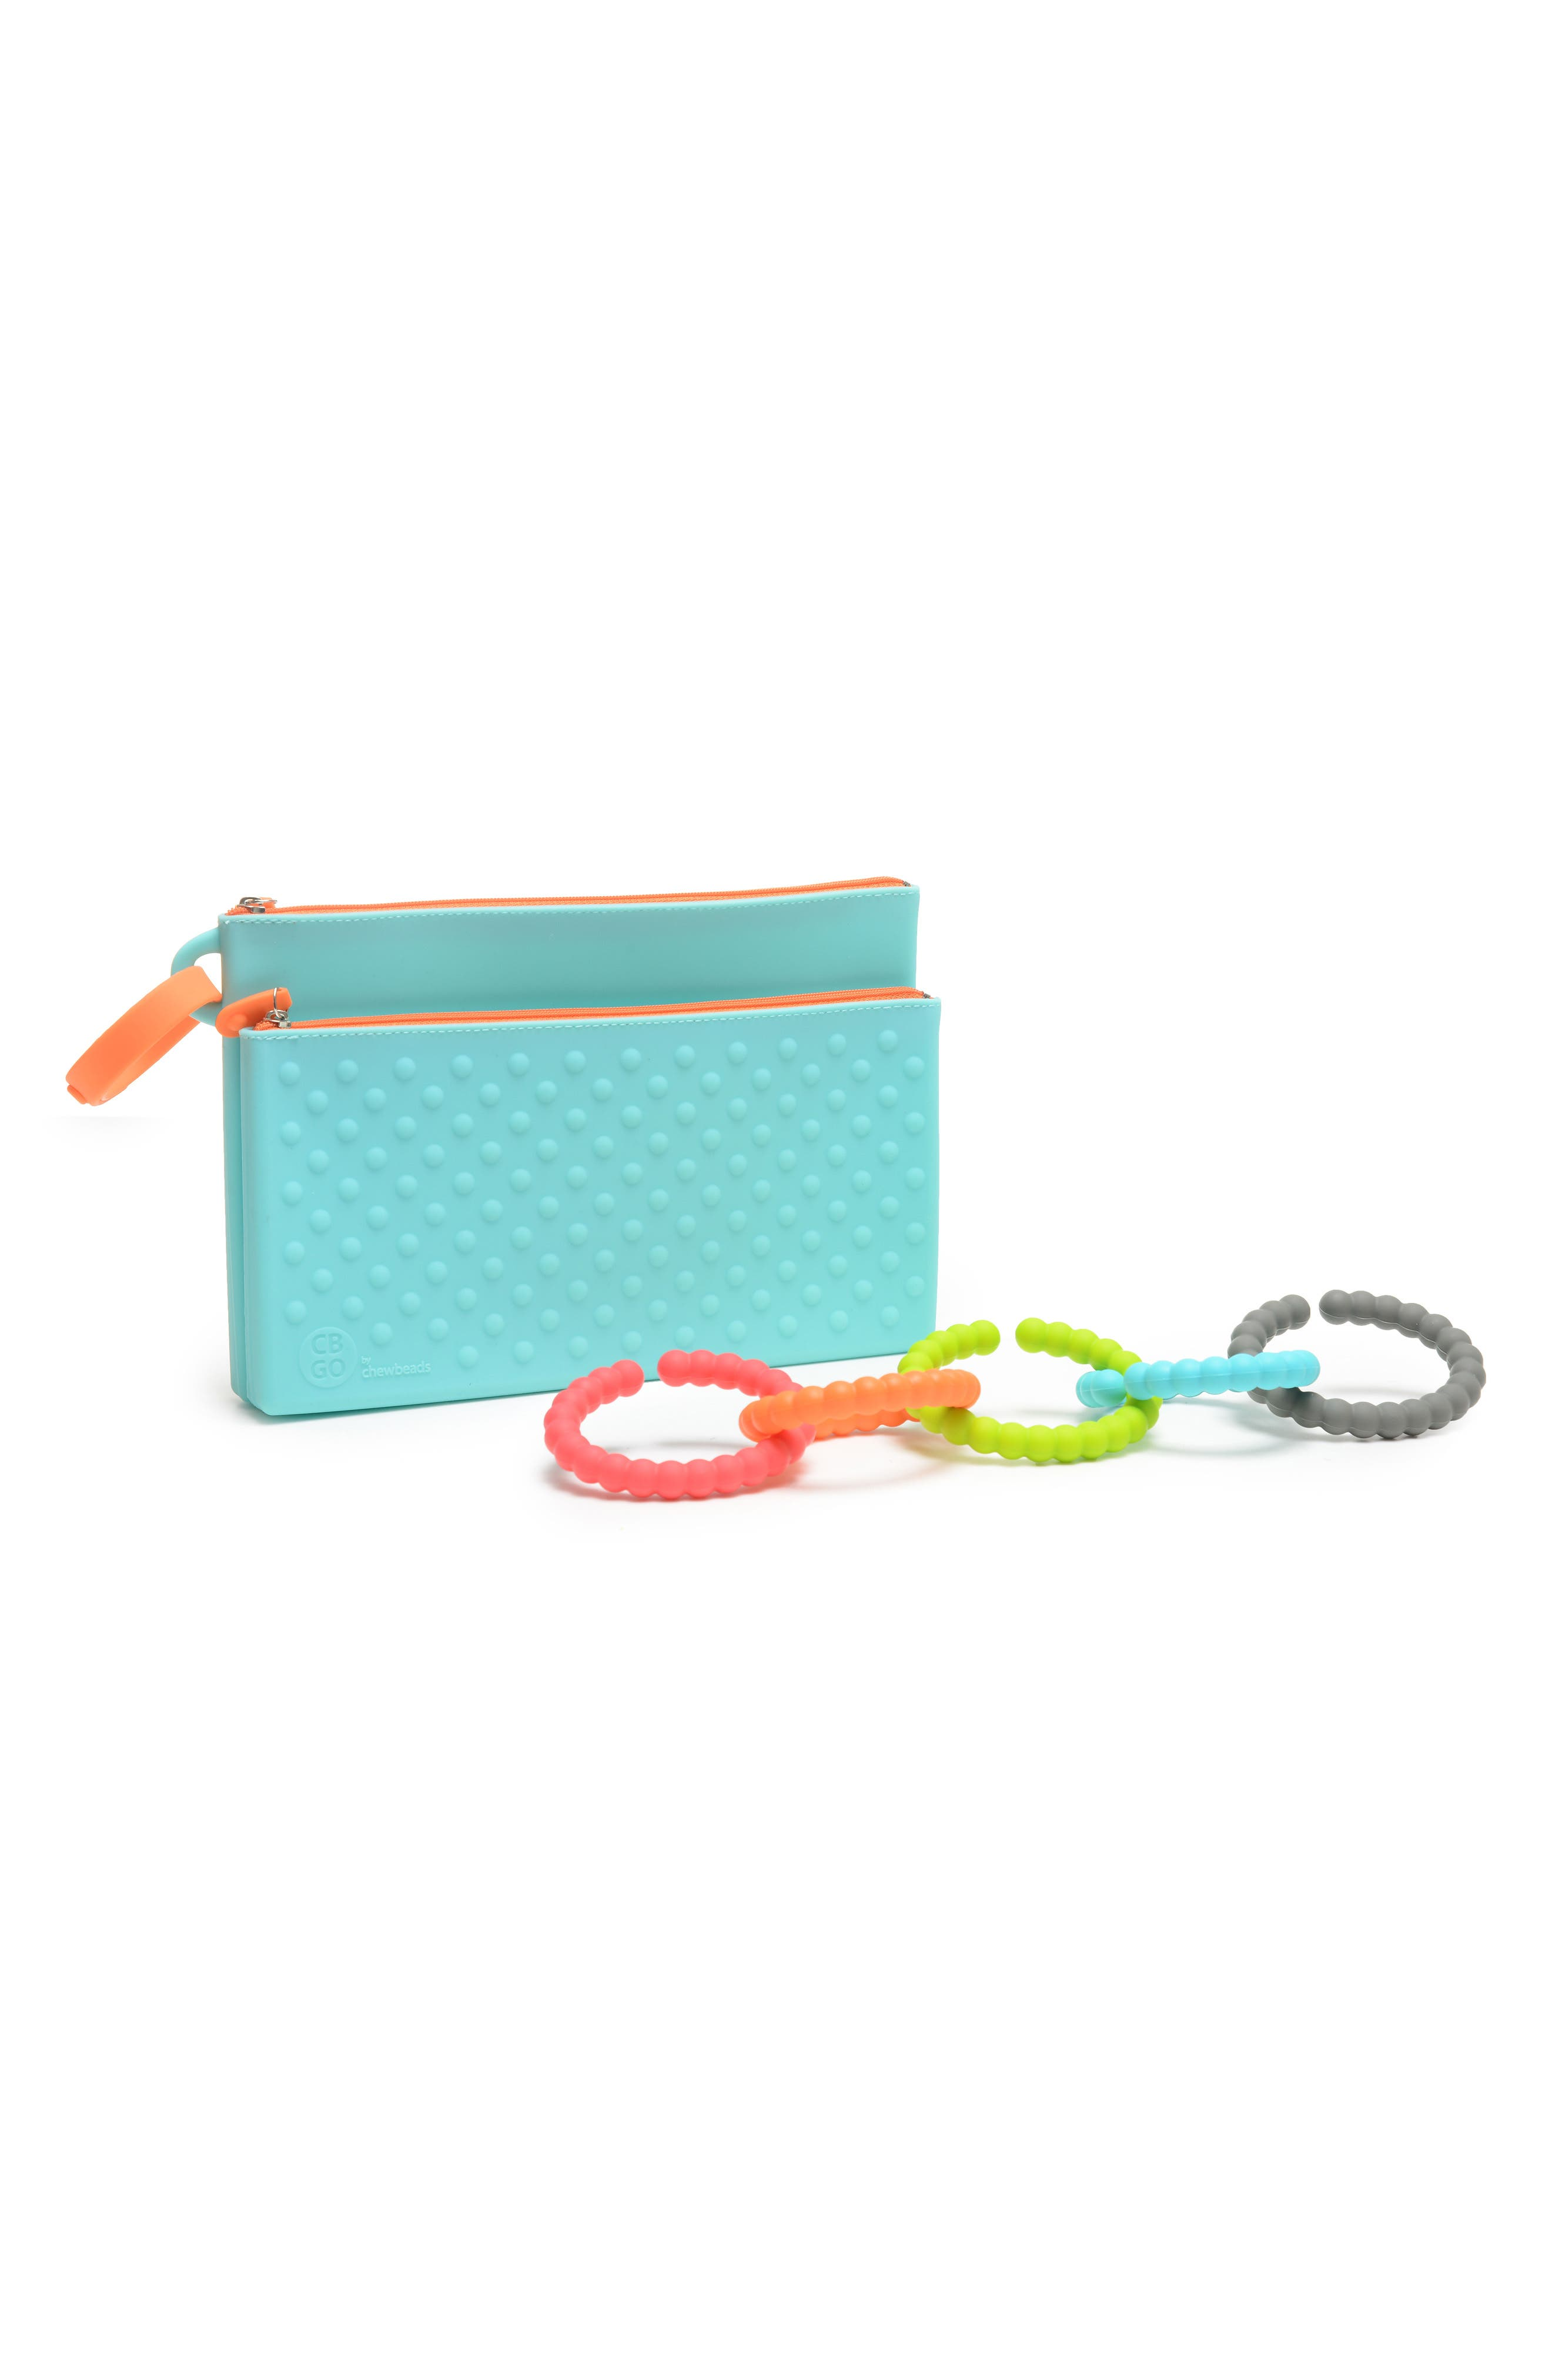 Chewbeads GO Wipes Case & Teething Links Set (Baby)